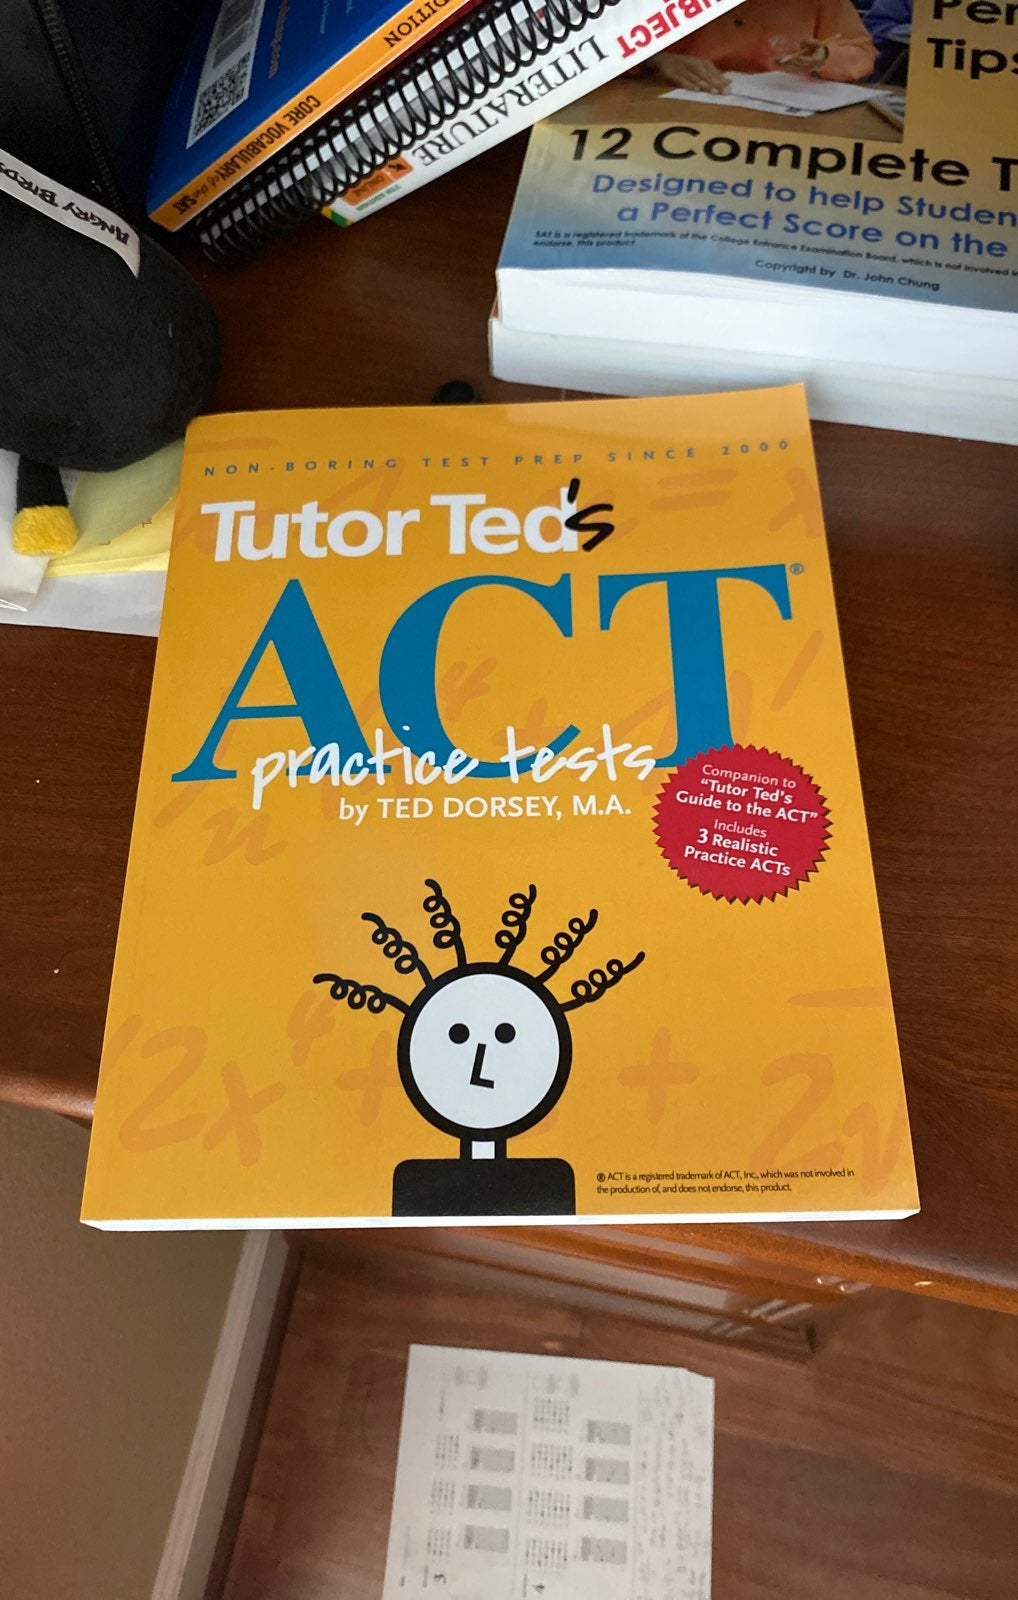 Tutor Ted ACT practice tests